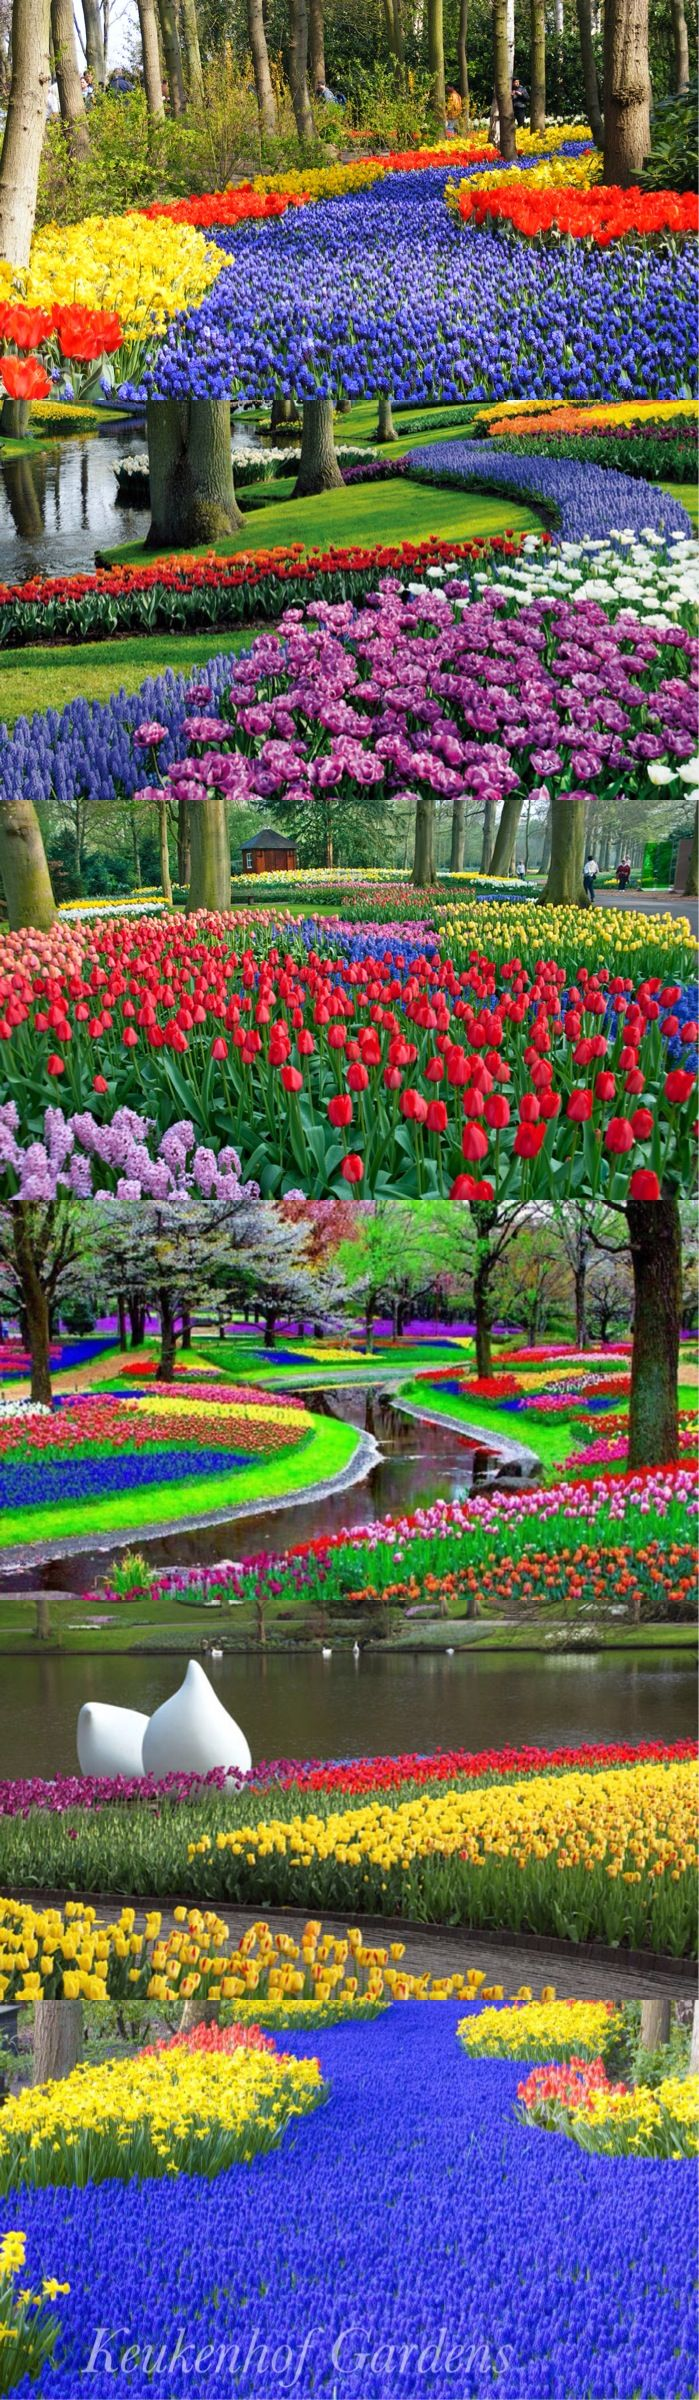 Tulip fields outside Keukenhof Gardens in Netherlands  Many people often mistake Keukenhof, also known as the Garden of Europe, as the designated space of the tulip fields. However, these majestic fields are located just outside the garden and are mostly privately owned.